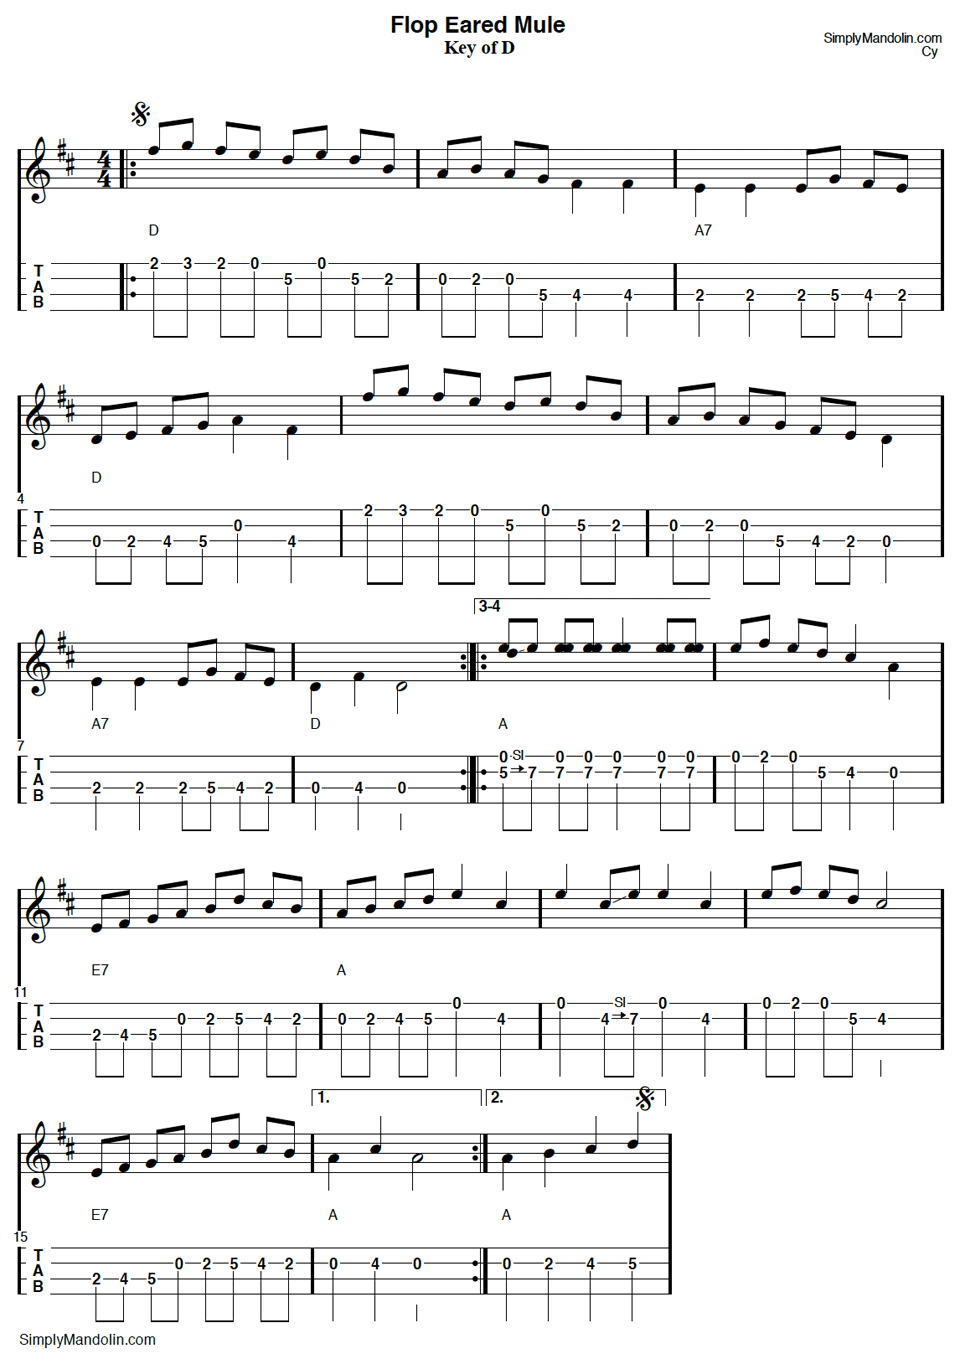 Mandolin Tablature for the bluegrass tune Flop Eared Mule.